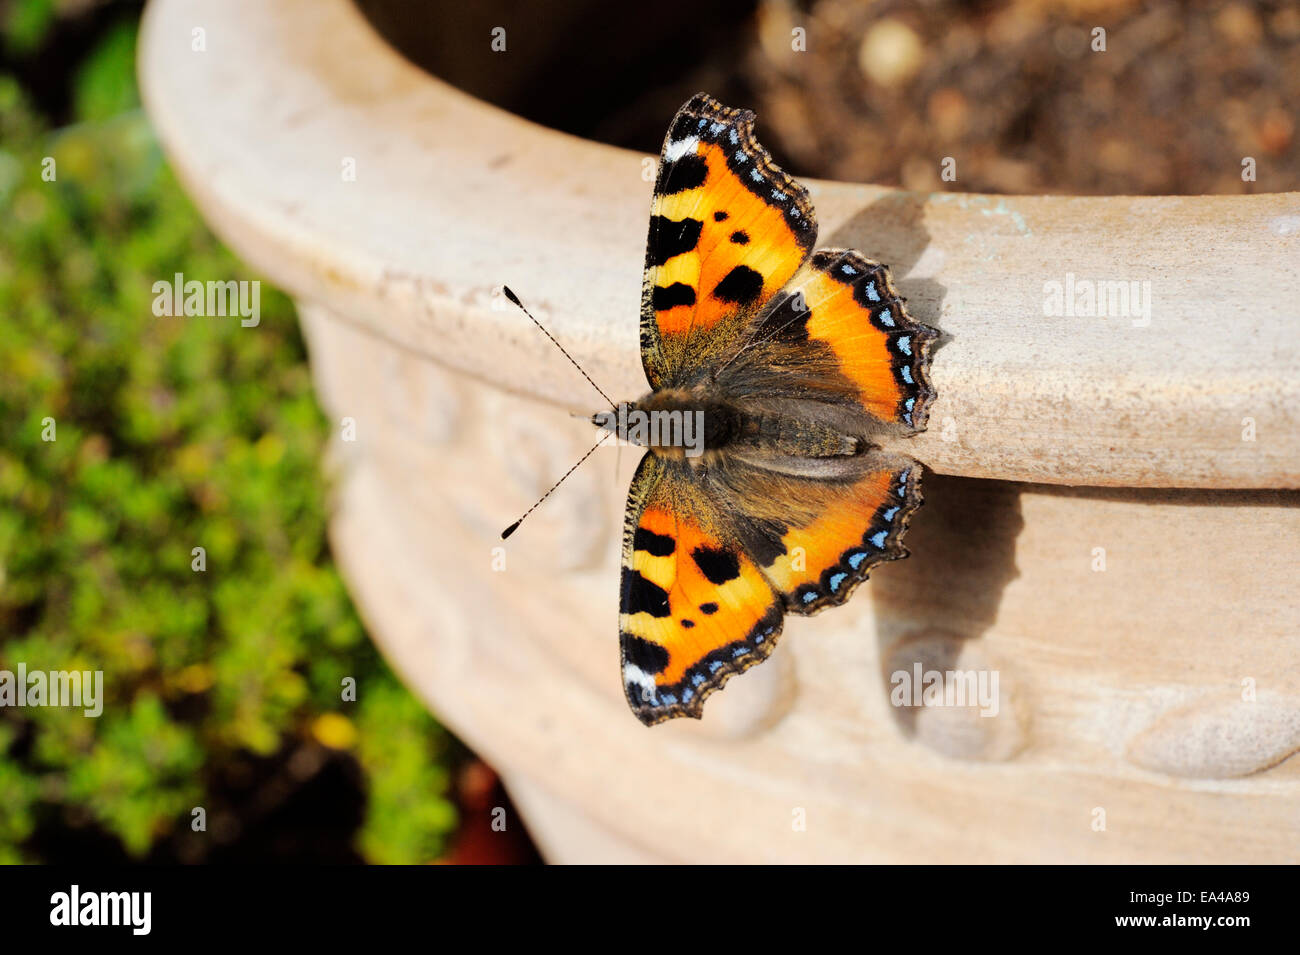 Small Tortoiseshell butterfly, Aglais urticae resting on a Terracotta plant pot, Wales, UK. - Stock Image